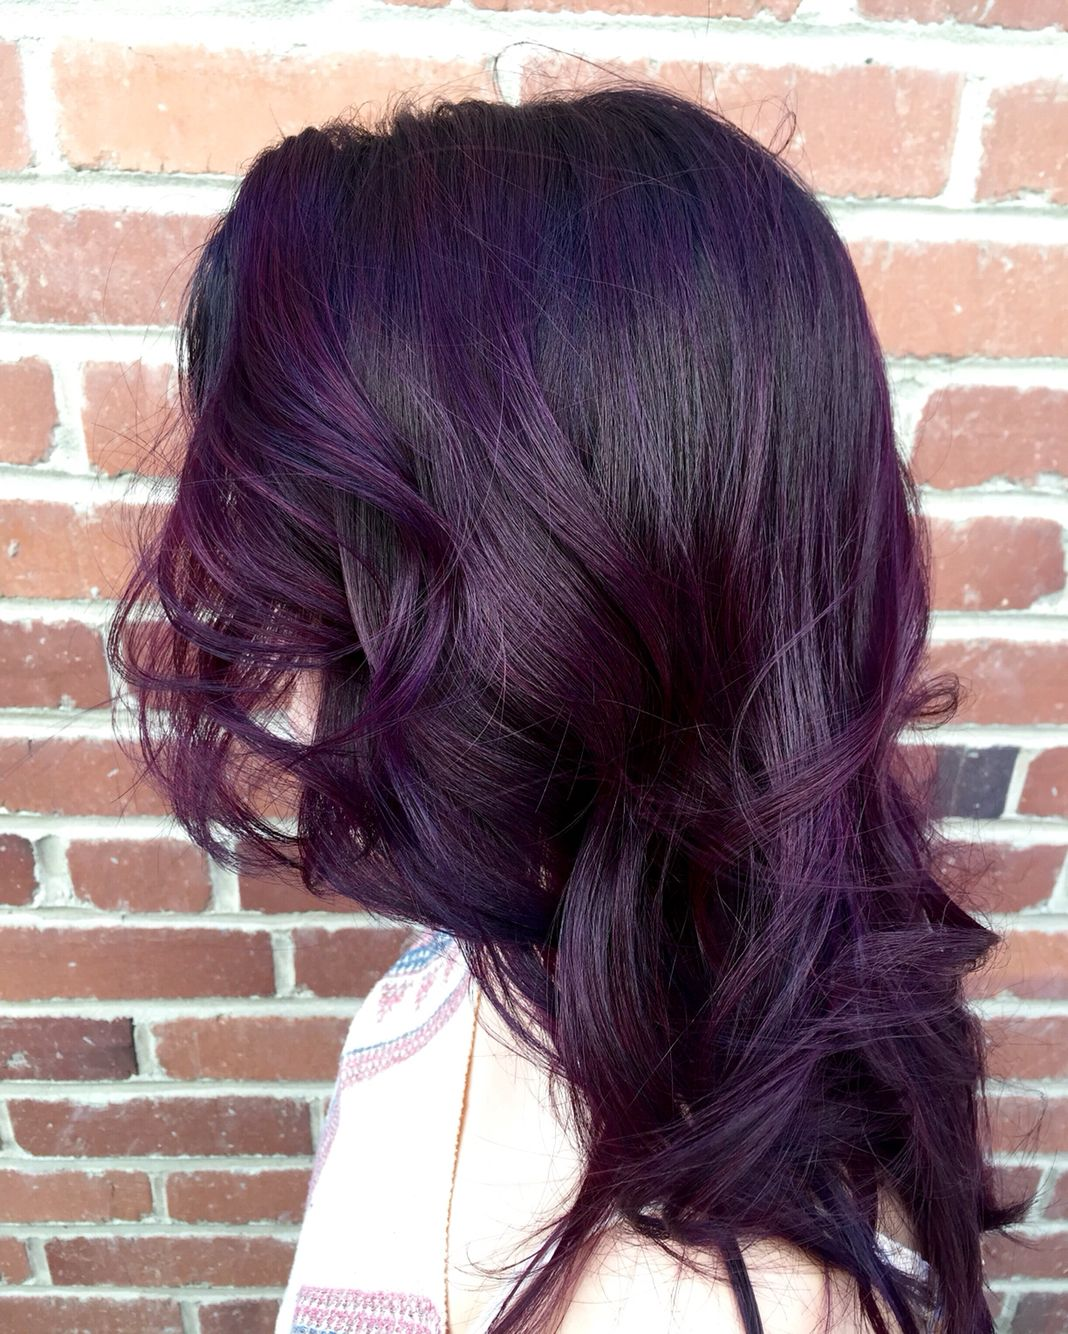 Pin By Reece Montgomery On Hair Pinterest Hair Purple Hair And